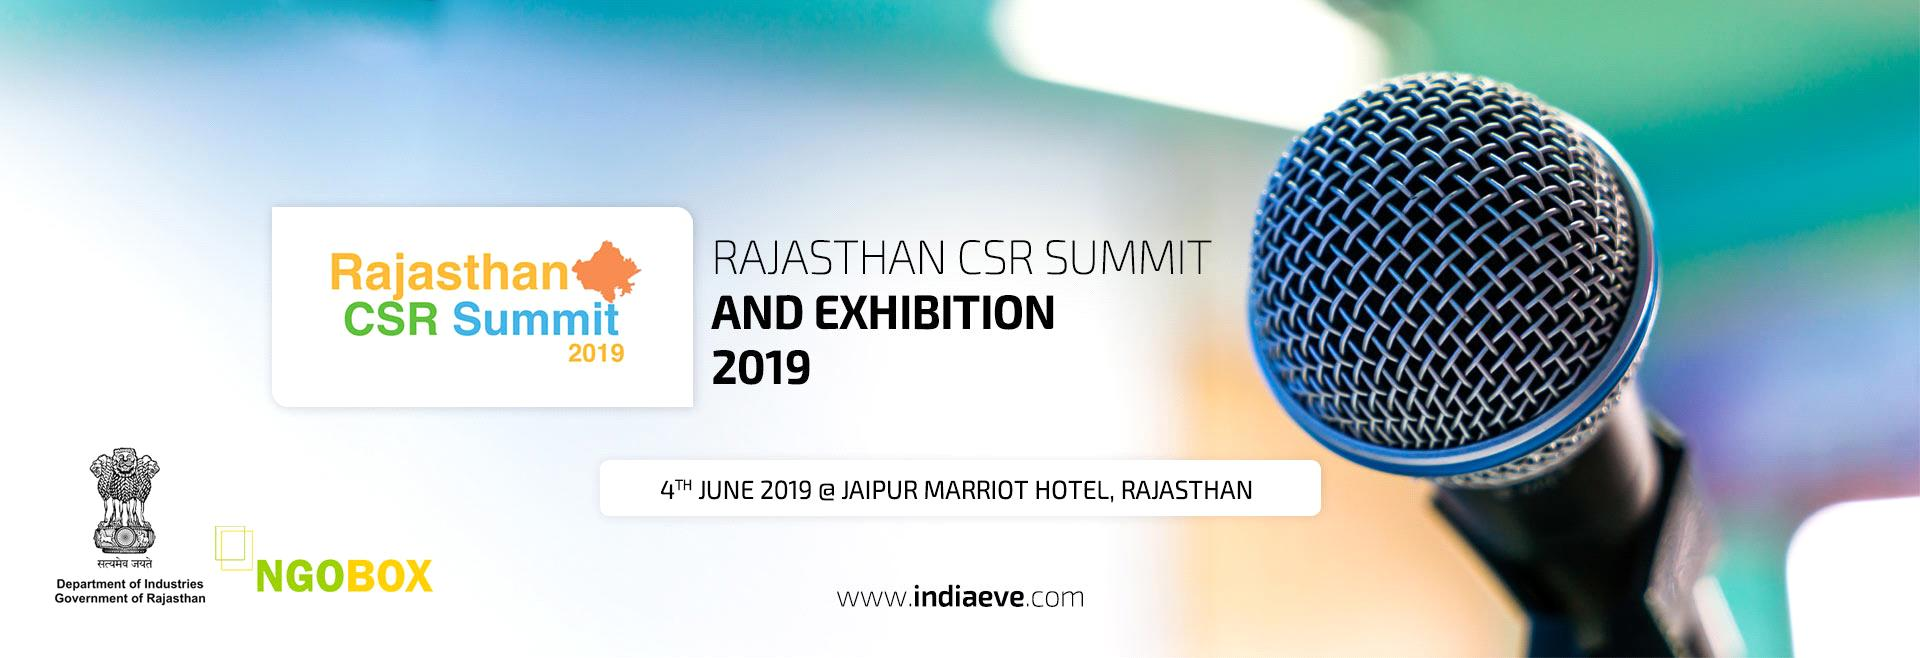 Rajasthan CSR Summit and Exhibition